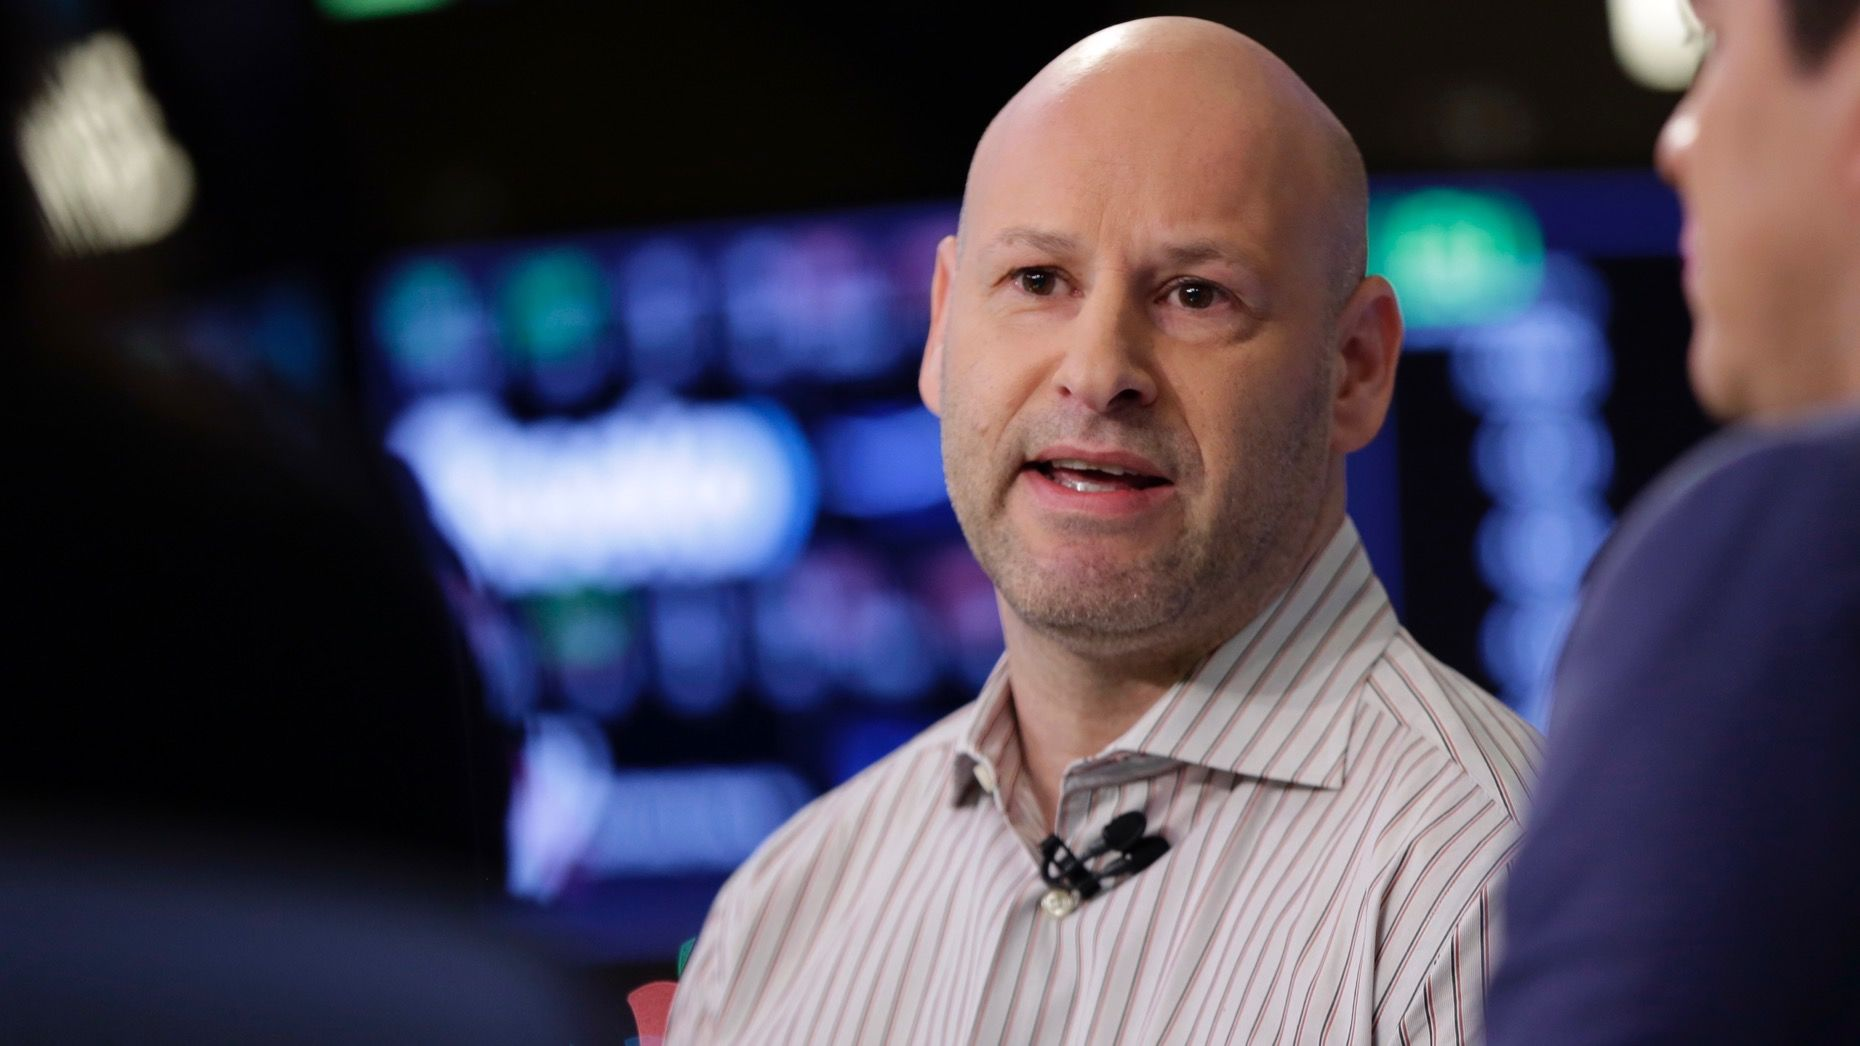 ConsenSys CEO Joseph Lubin in 2017. Photo: AP